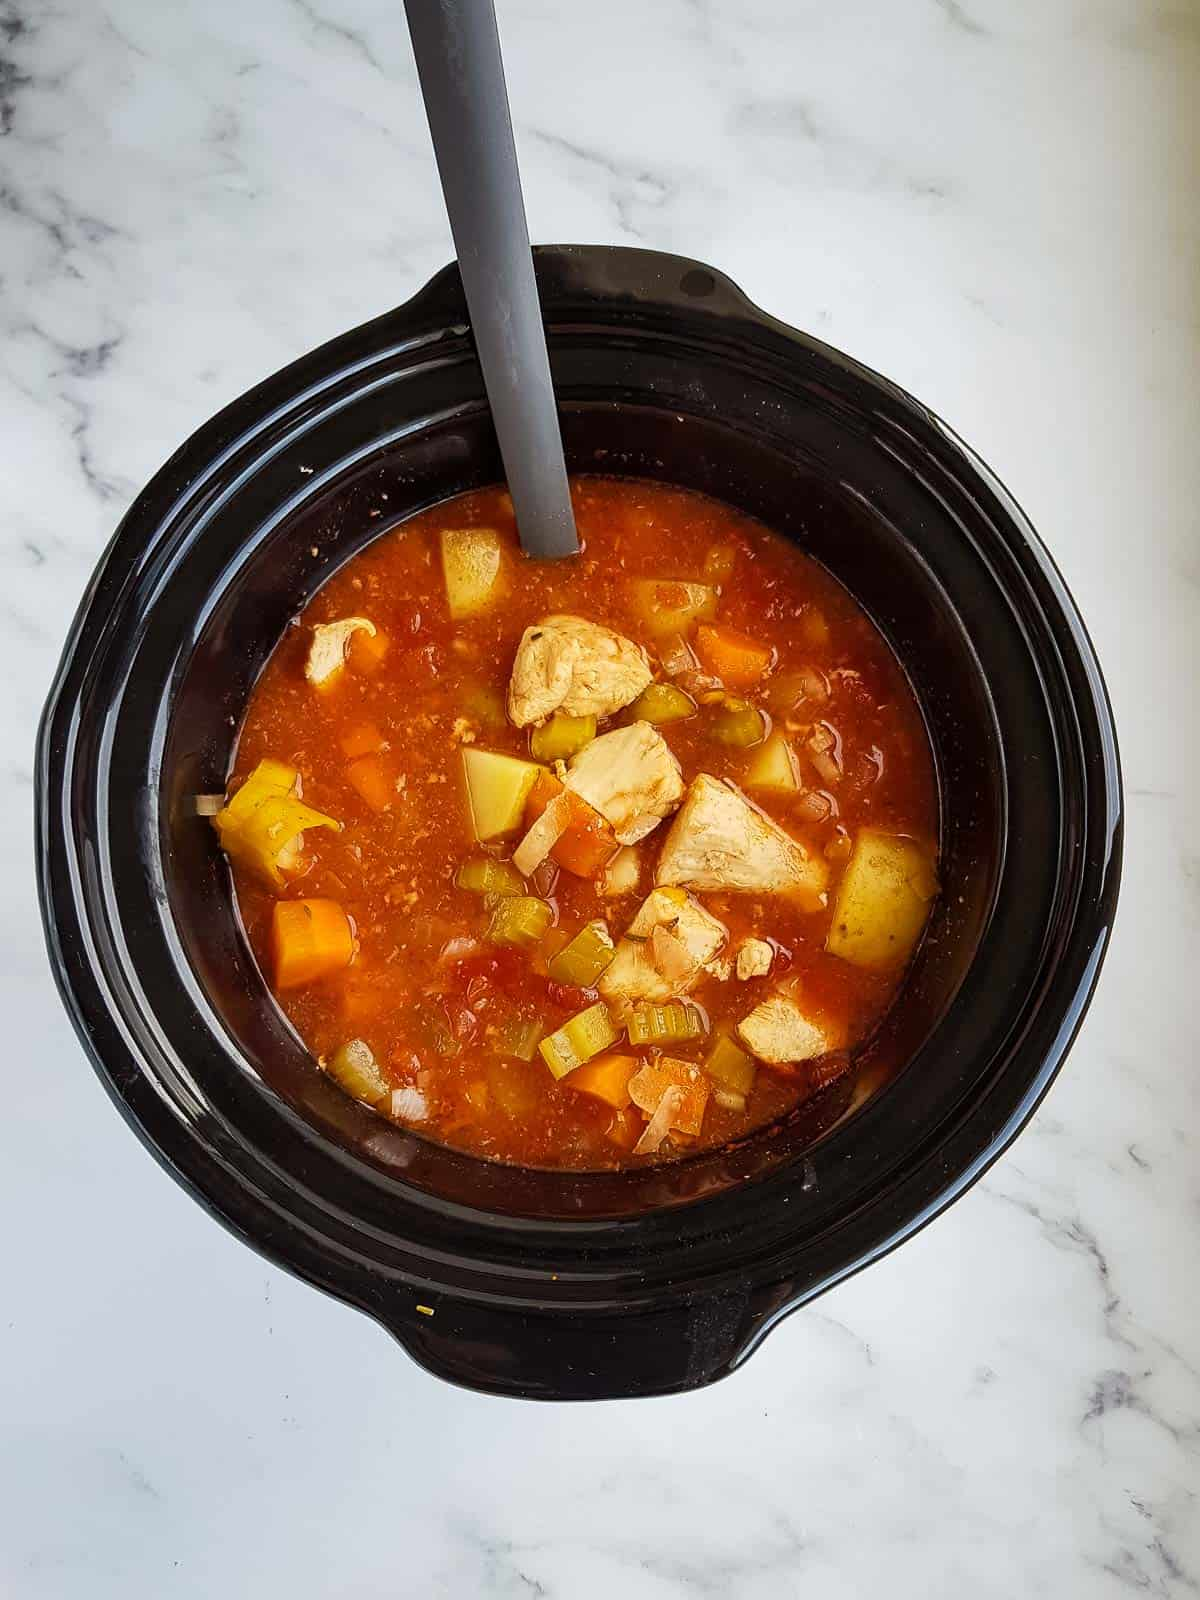 Cooked chicken stew in a slow cooker.